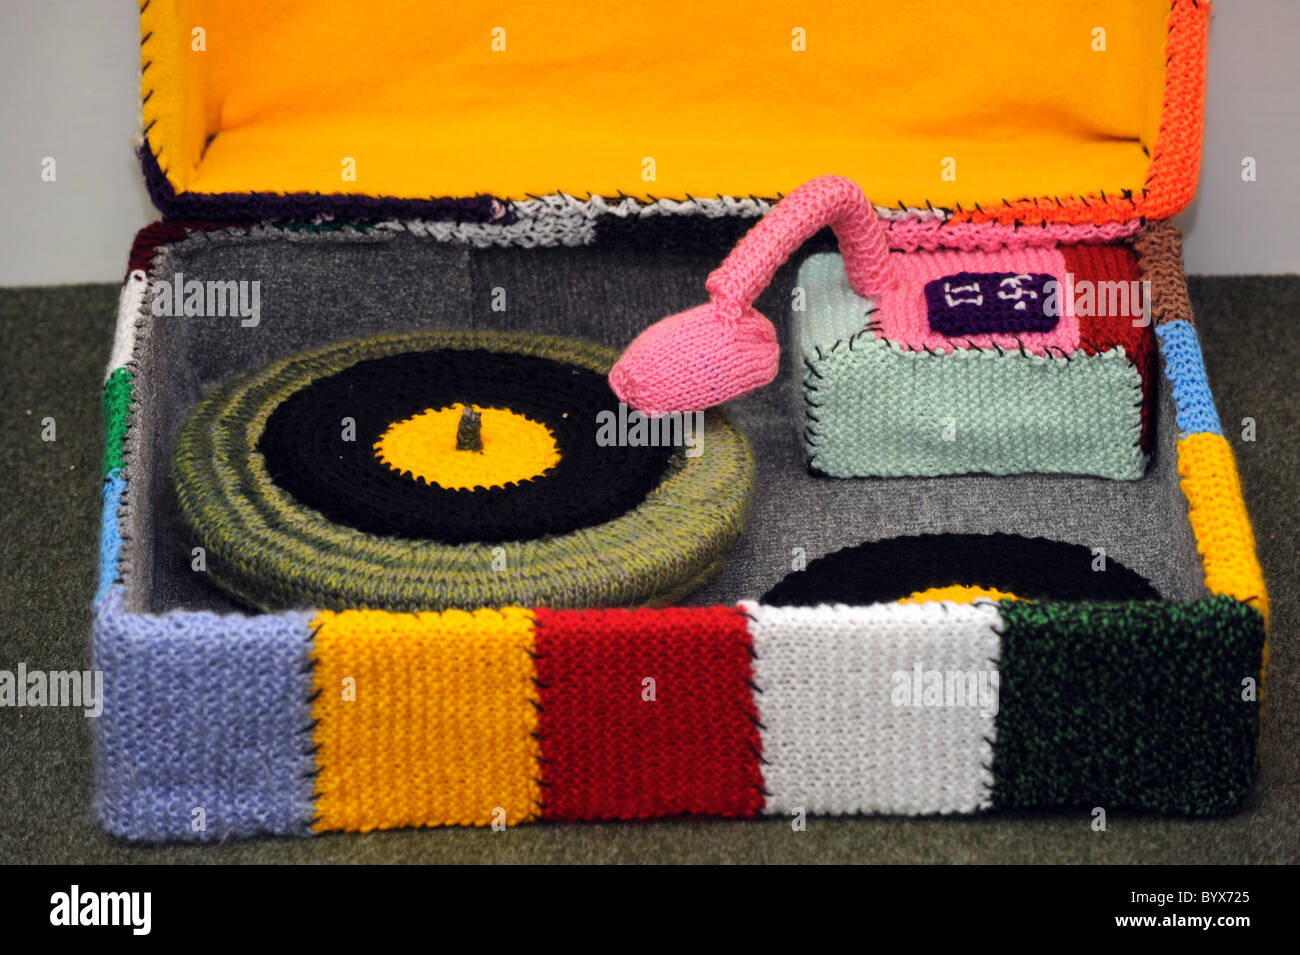 Volunteers from homeless charity Emmaus in Brighton have knitted a life size living room complete with knitted objects - Stock Image